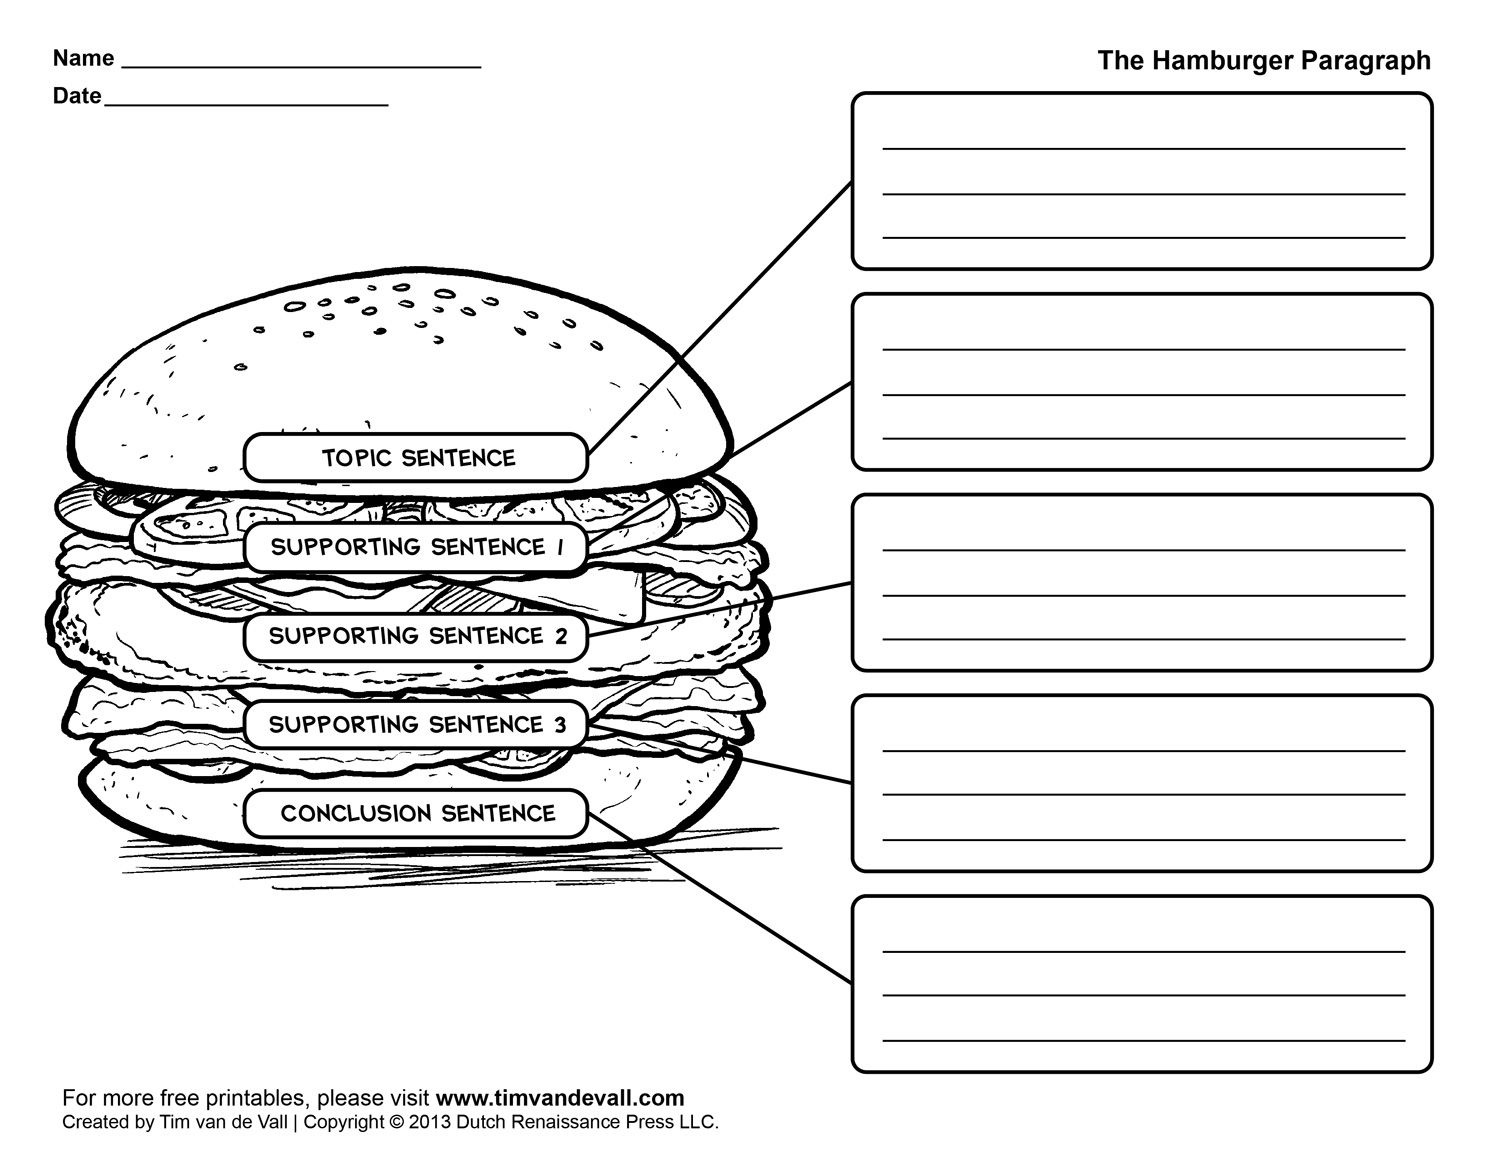 009 Essay Example Paragraph Graphic Organizer Hamburger Writings And Essays Organizers For Writing Argumentative Download To Help Kids With Topic Pertain Descriptive College Literary Best Sensational 5 Five High School Pdf Organizer-hamburger Full